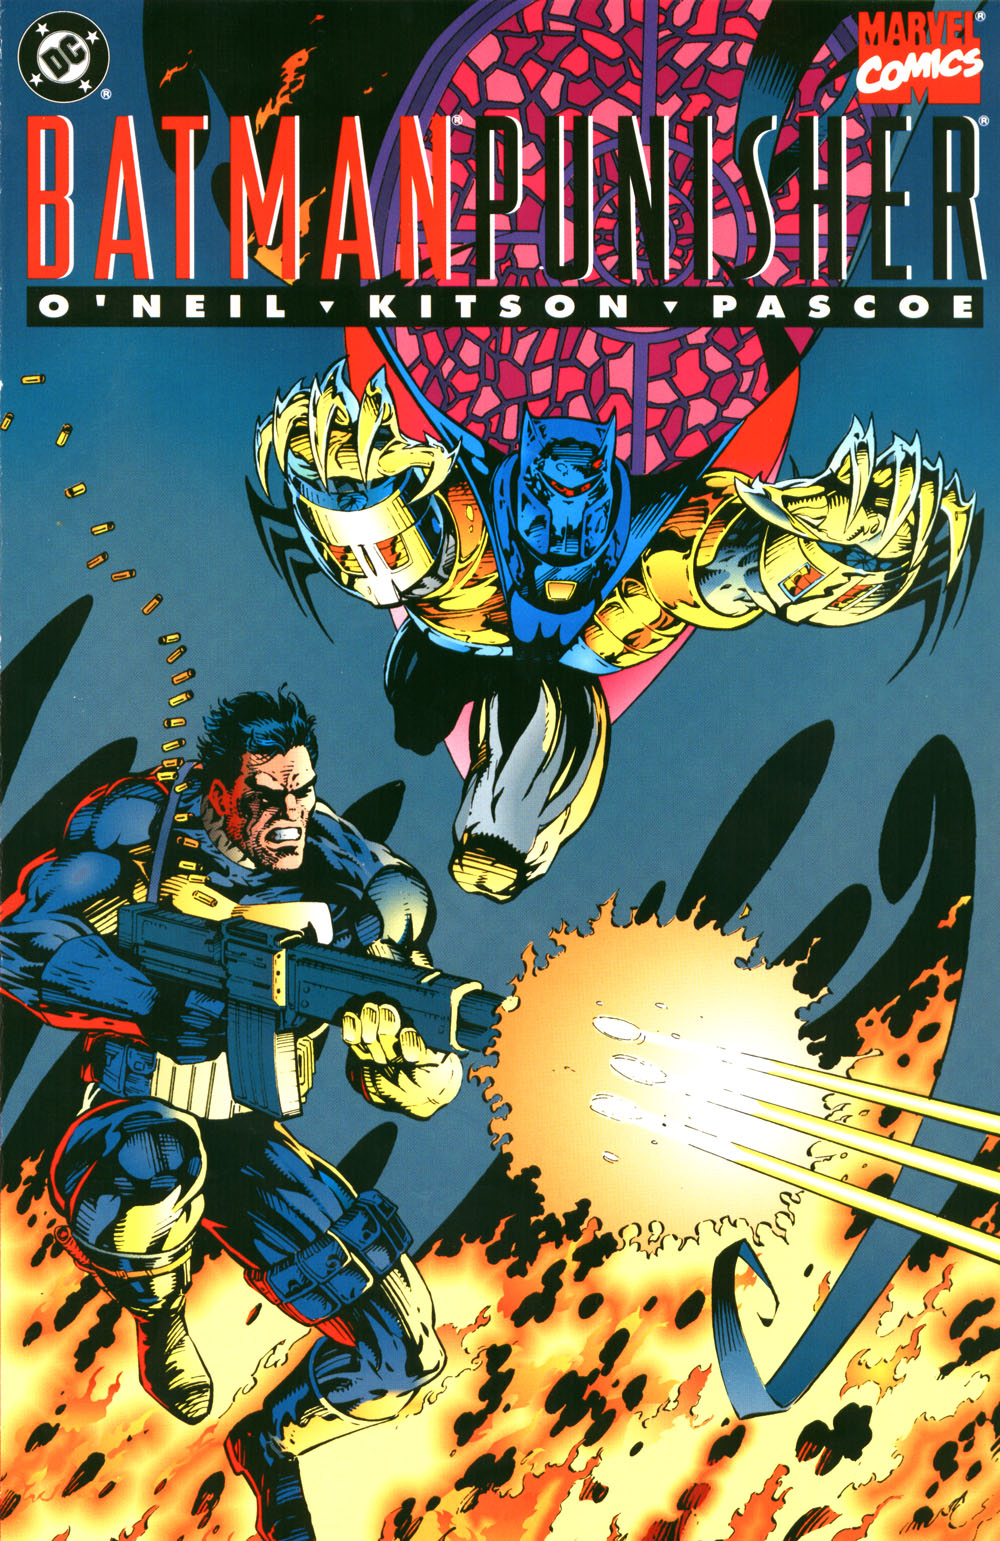 Batman and Punisher: Lake of Fire Vol 1 1 | Marvel Database